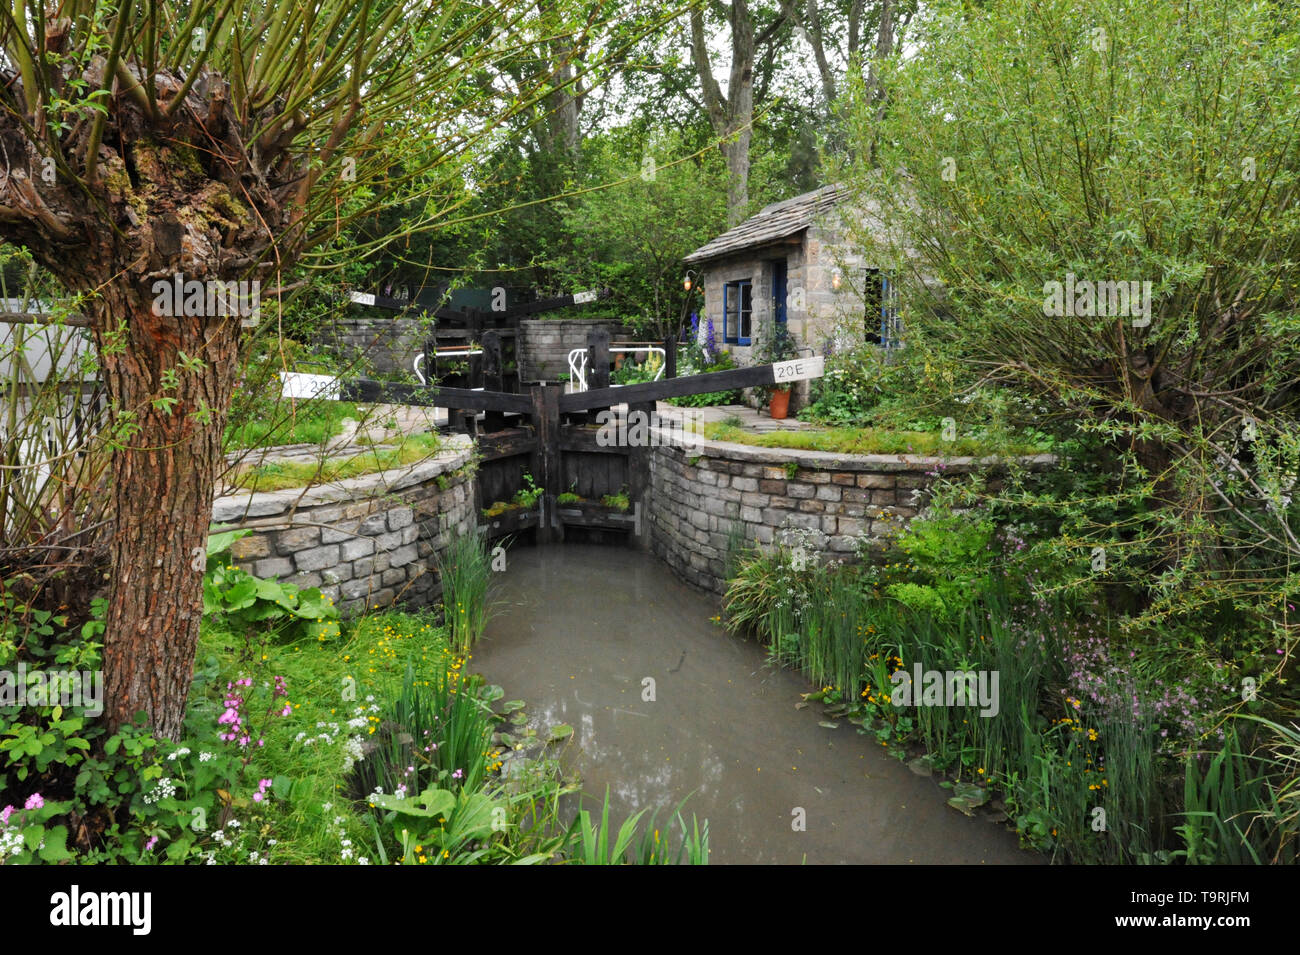 The Welcome to Yorkshire Garden (designed by Mark Gregory), one of the eleven beautiful and elegant show gardens on display at the 2019 RHS Chelsea Flower Show which opened today in the 11-acre grounds of the Royal Hospital Chelsea, London, United Kingdom - 20 May 2019  The garden is inspired by the rich heritage and history of infrastructure in West Yorkshire, reminiscent of the urban regeneration of the likes of the Huddersfield Narrow Canal, now a major tourist attraction.  There are 26 themed gardens on display at this year's show as well as over 100 plant displays in the Great Pavilion. N - Stock Image